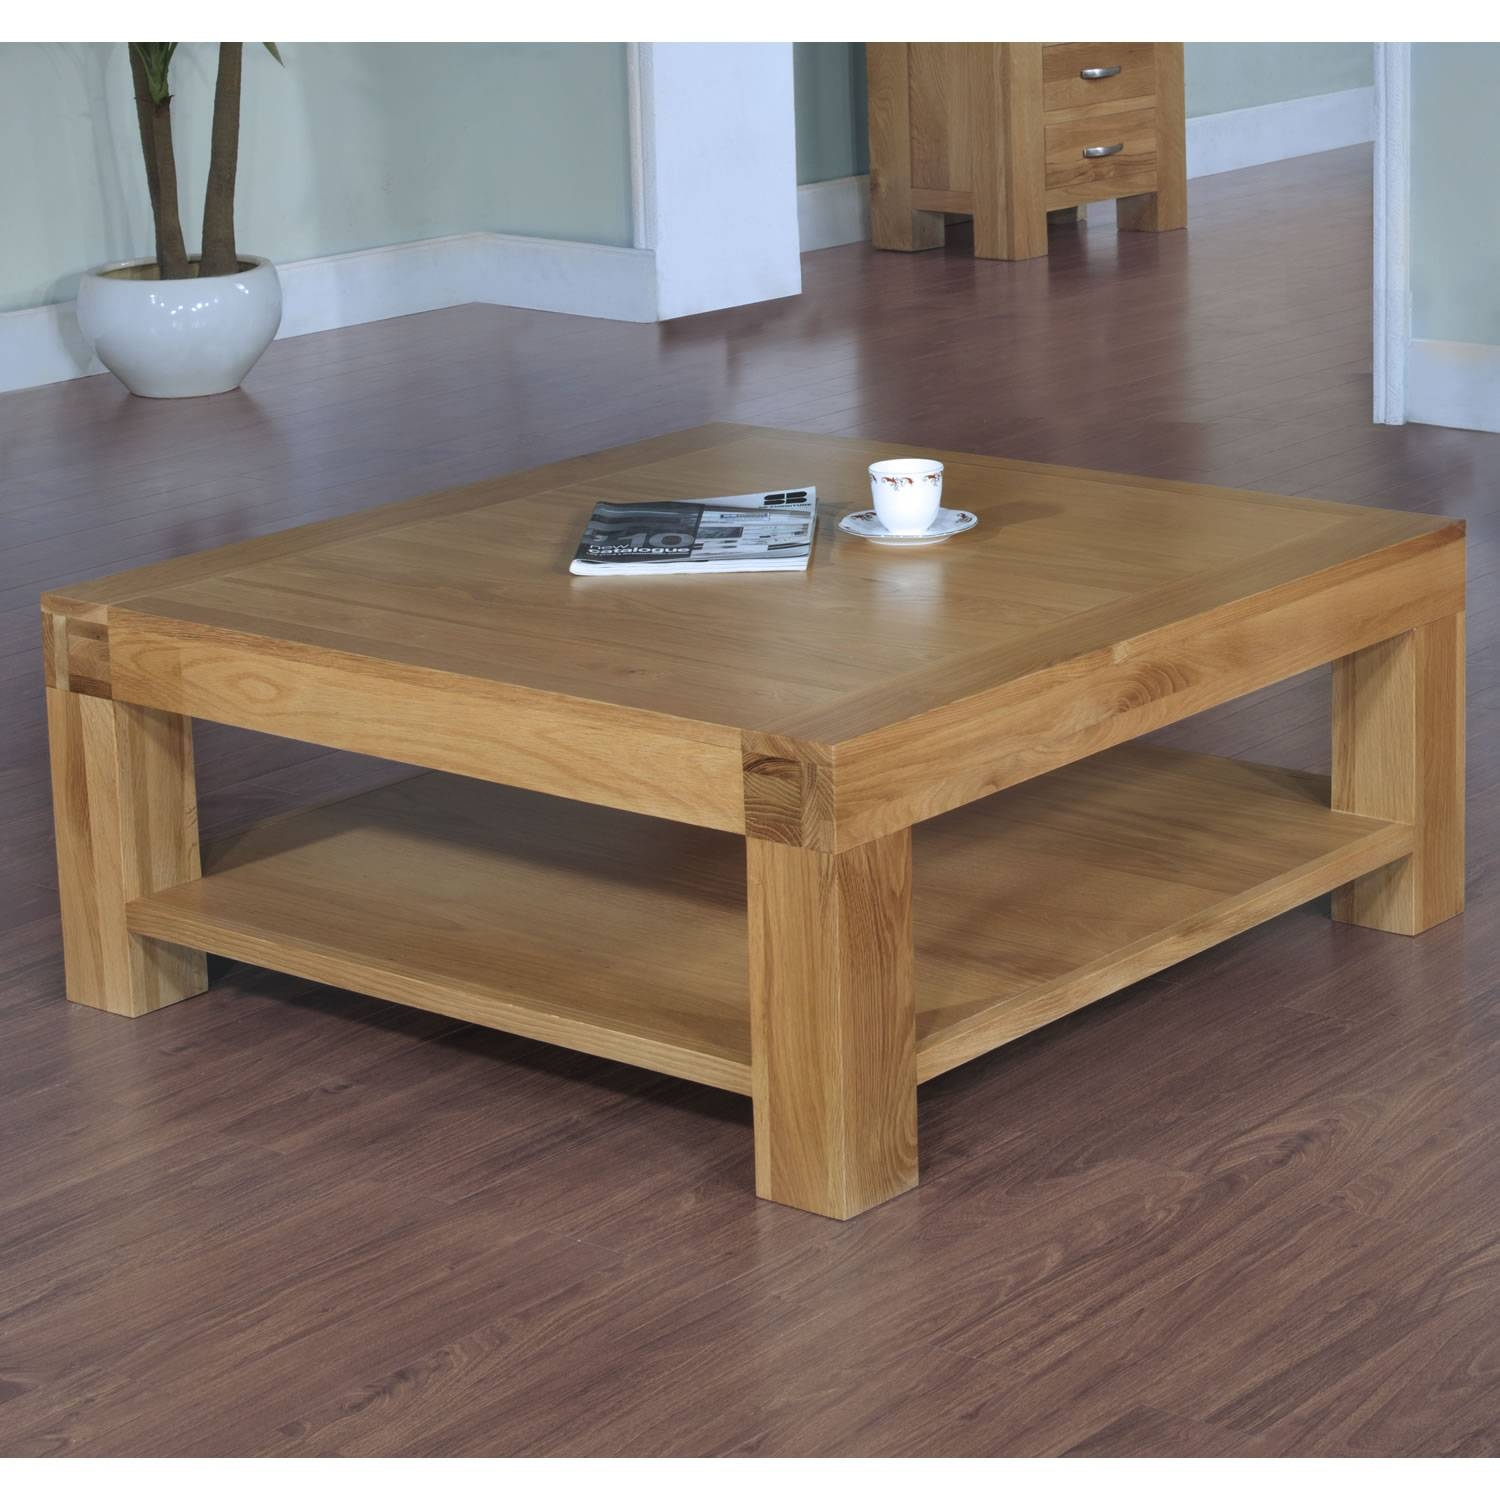 Helpful Square Coffee Tables | Home Furniture And Decor Pertaining To Square Coffee Tables (View 13 of 30)